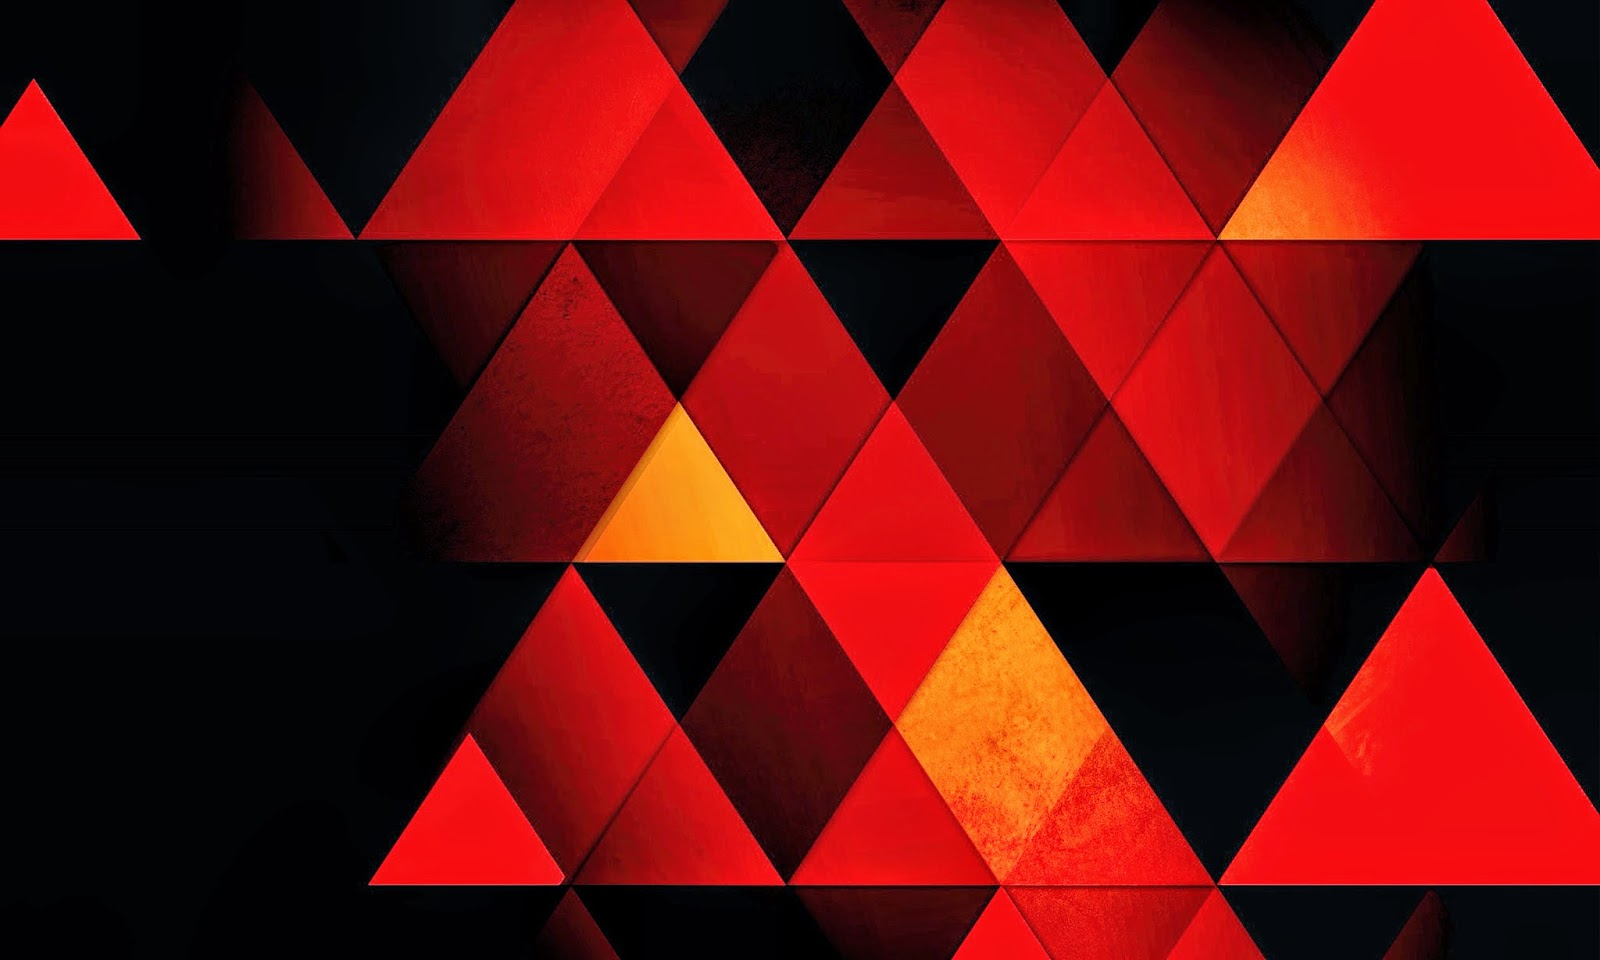 triangle abstract wallpapers - photo #5